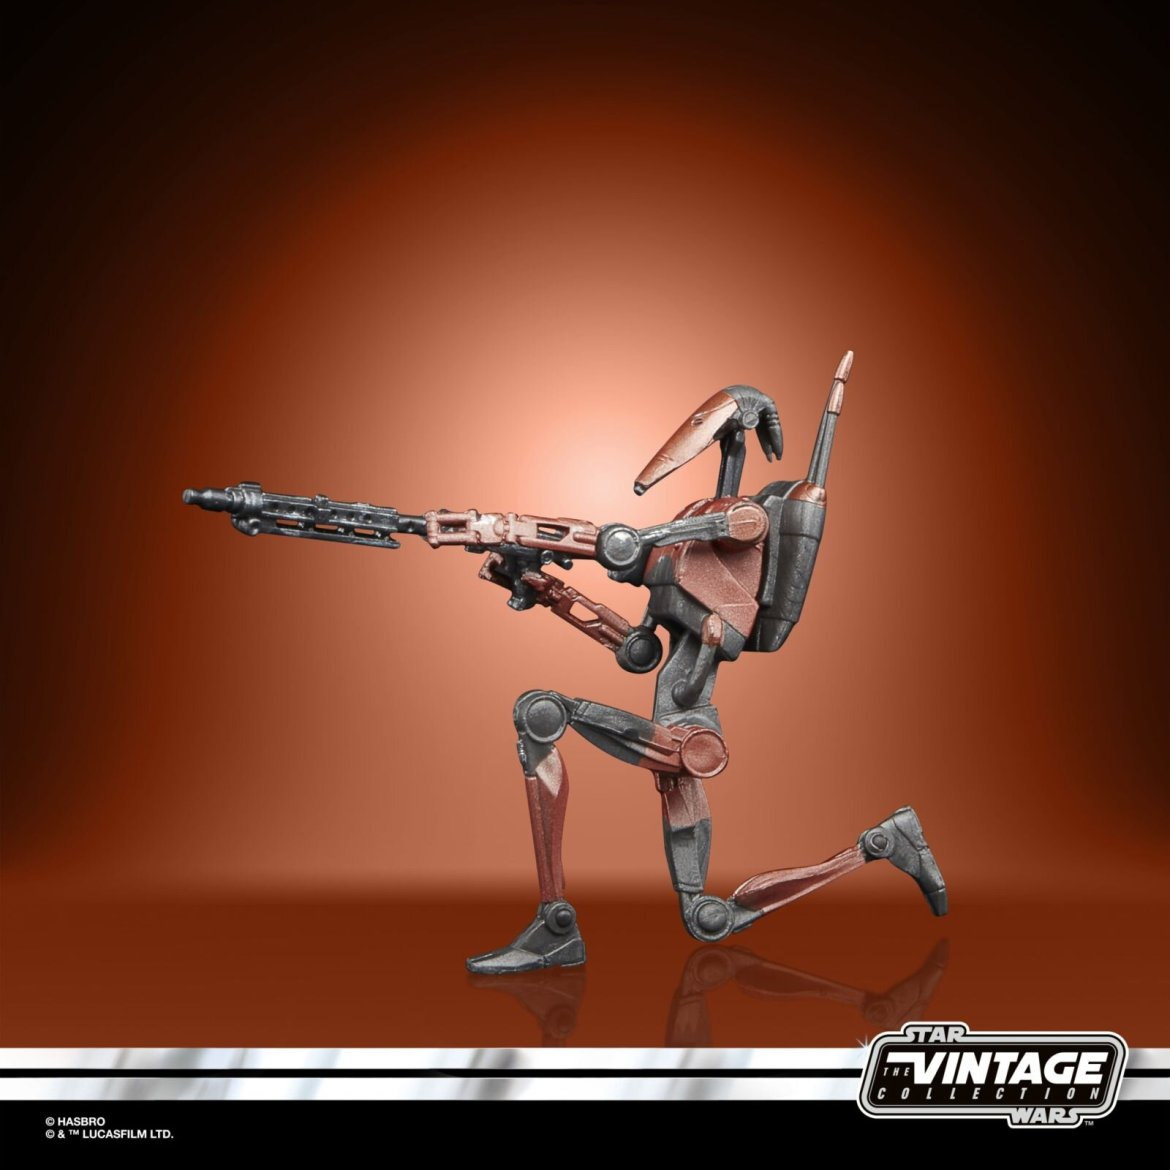 STAR WARS THE VINTAGE COLLECTION GAMING GREATS 3.75-INCH HEAVY BATTLE DROID Figure (6).jpg